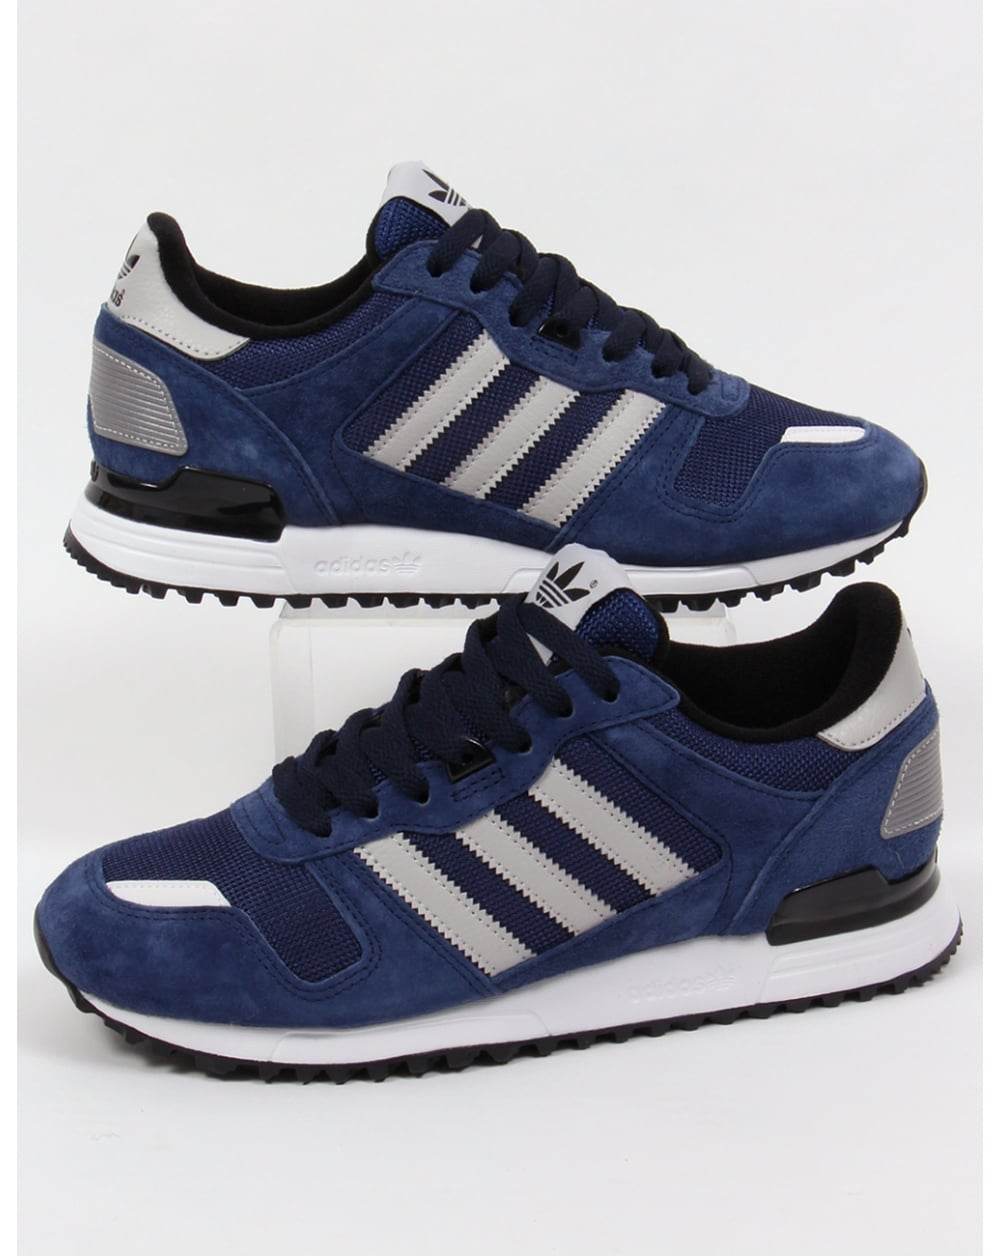 adidas zx 700 trainers navy grey black originals shoes. Black Bedroom Furniture Sets. Home Design Ideas